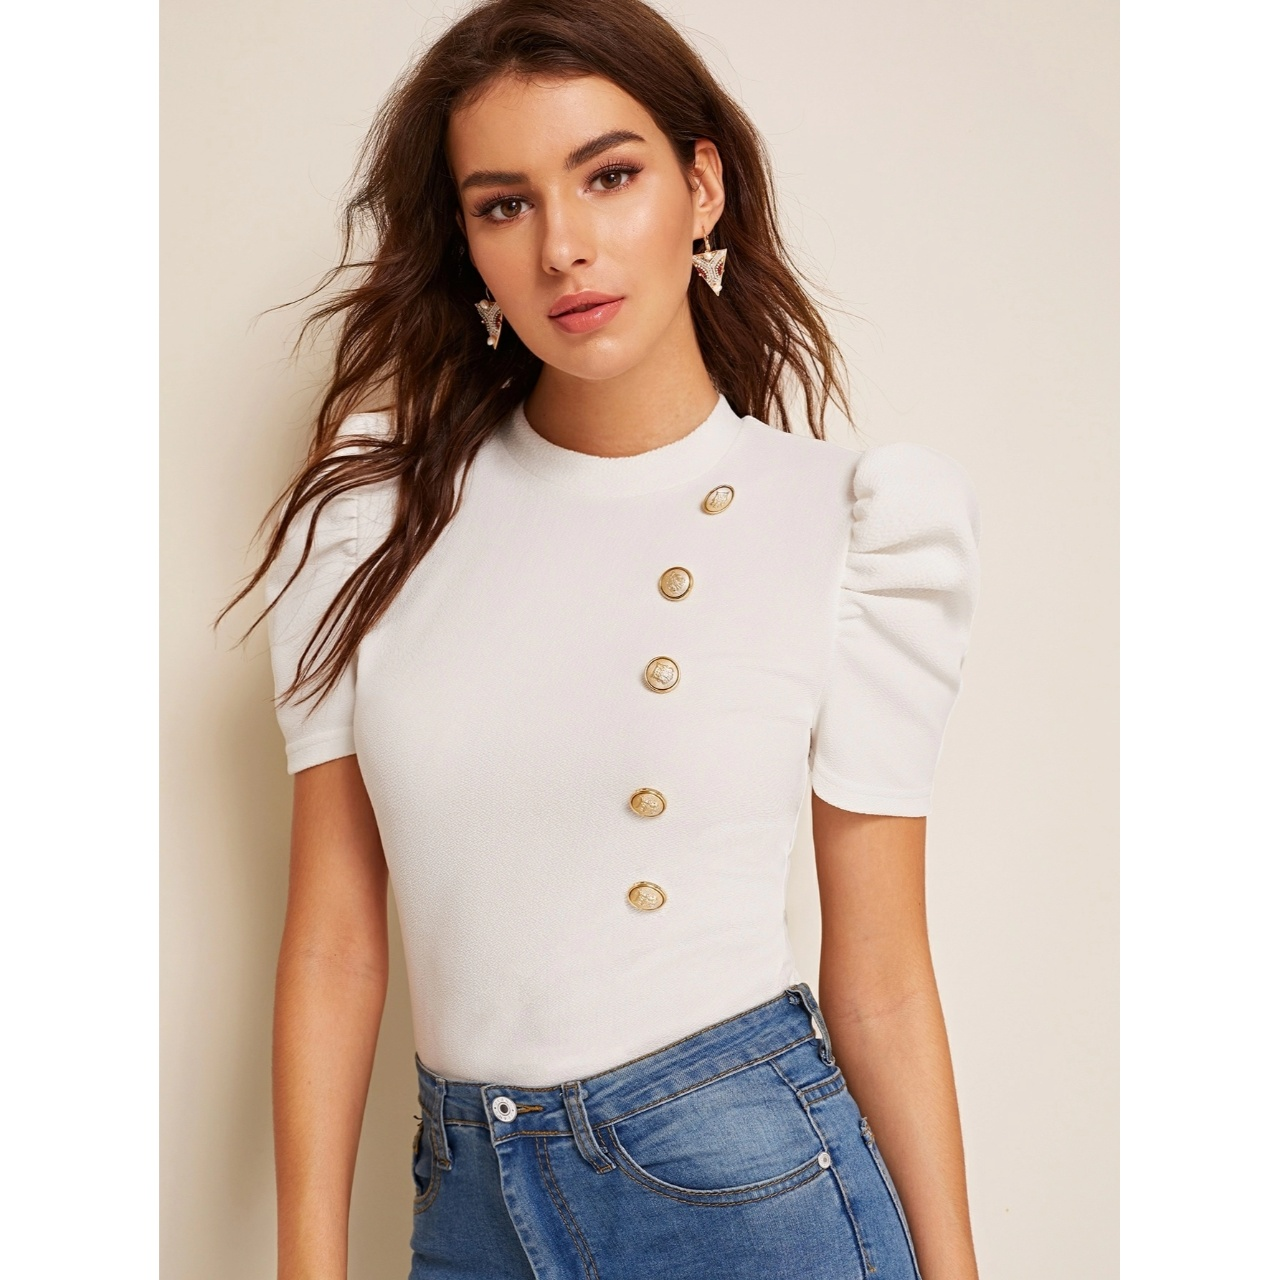 Shein mock-neck puff sleeve button front top m